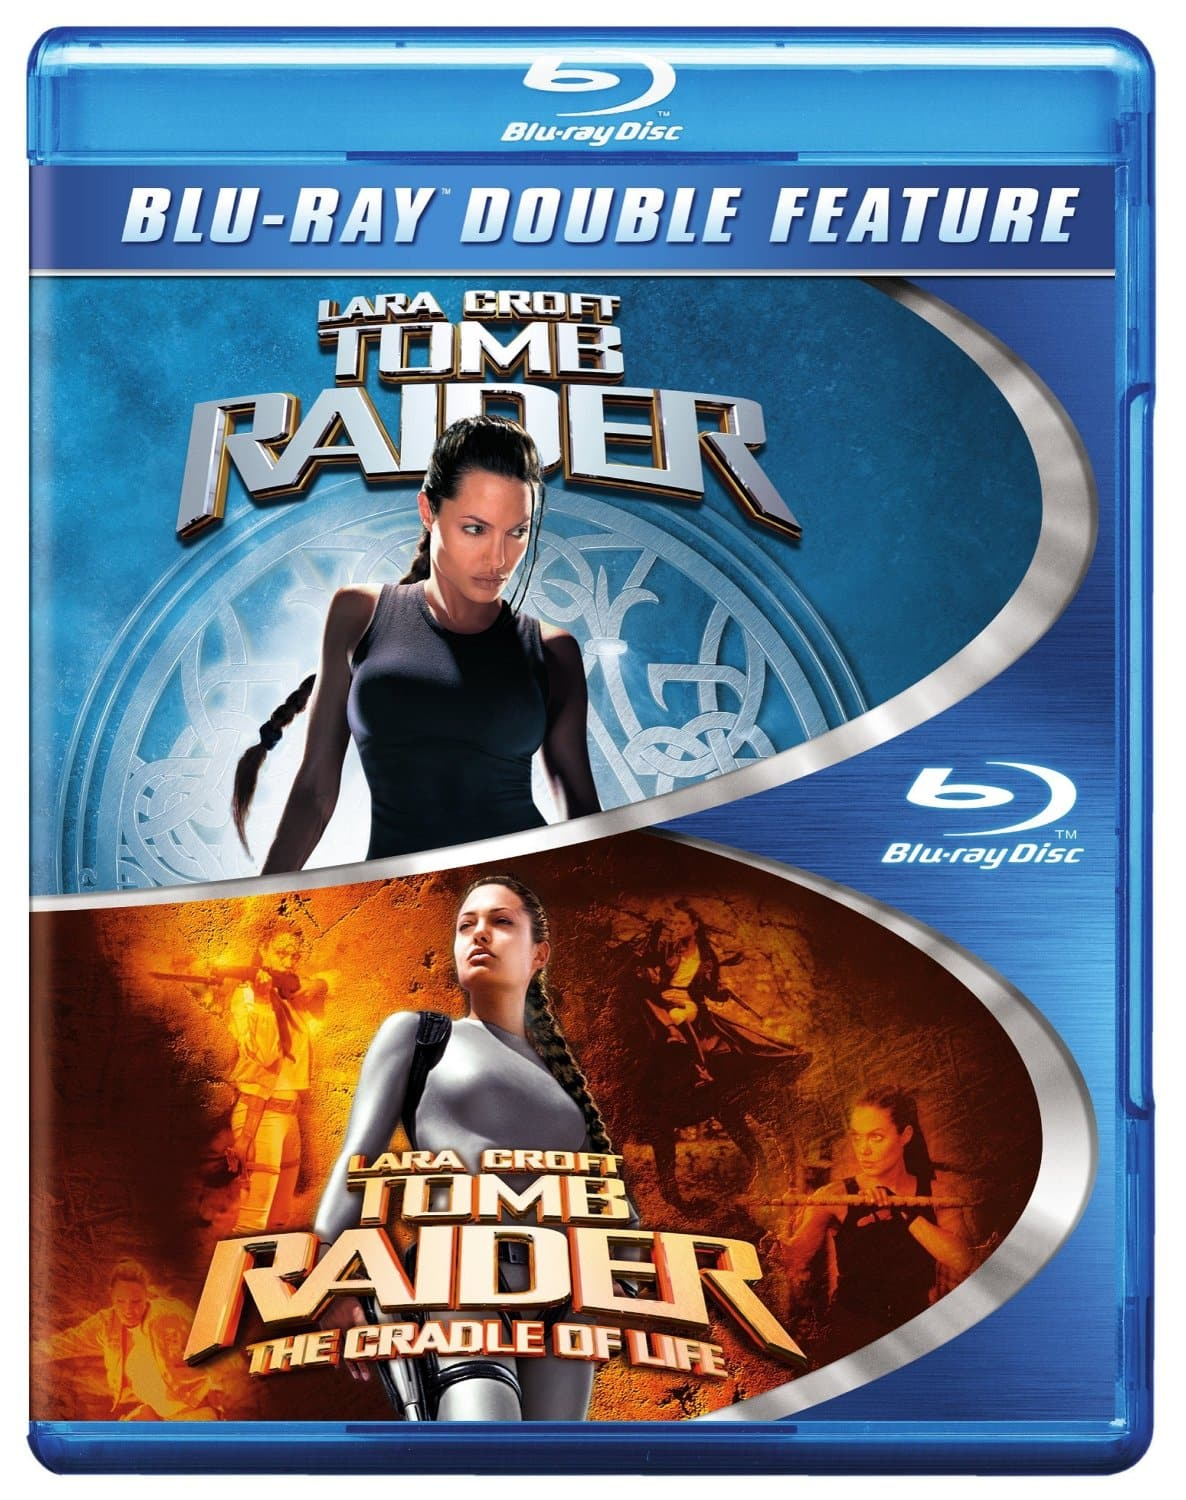 Lara Croft Tomb Raider & Lara Croft Tomb Raider: The Cradle of Life (Blu-ray)  $5 + Free Store Pickup